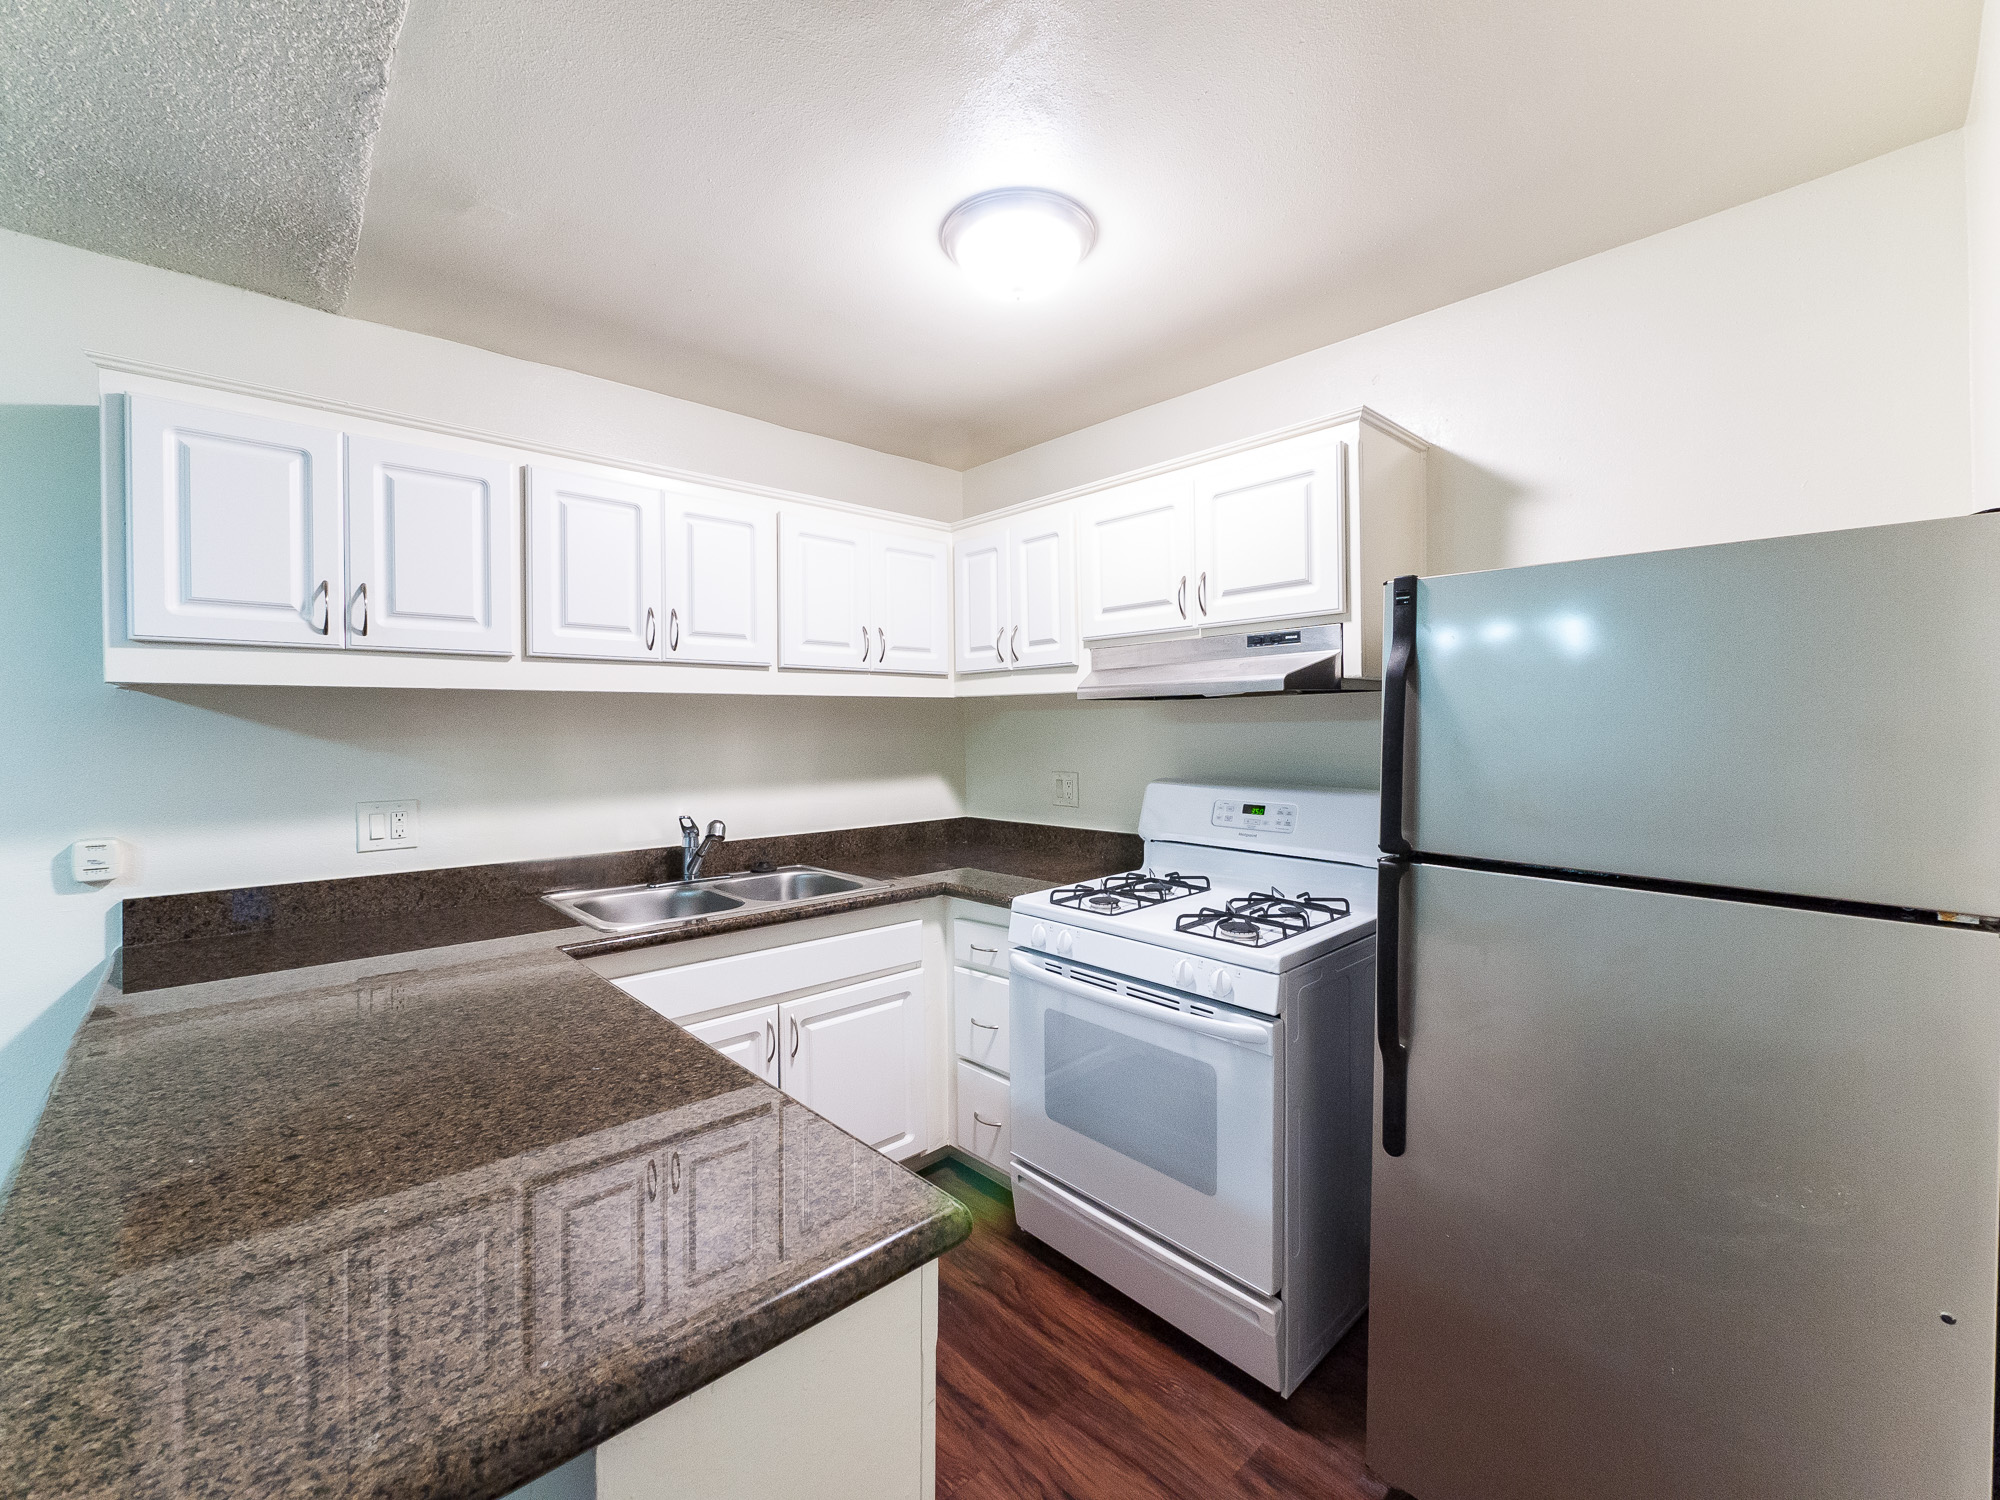 Large, Renovated Studio - Stainless Kitchen -AC- Parking Incl. - Great Layout and an Even Better K-Town Location!